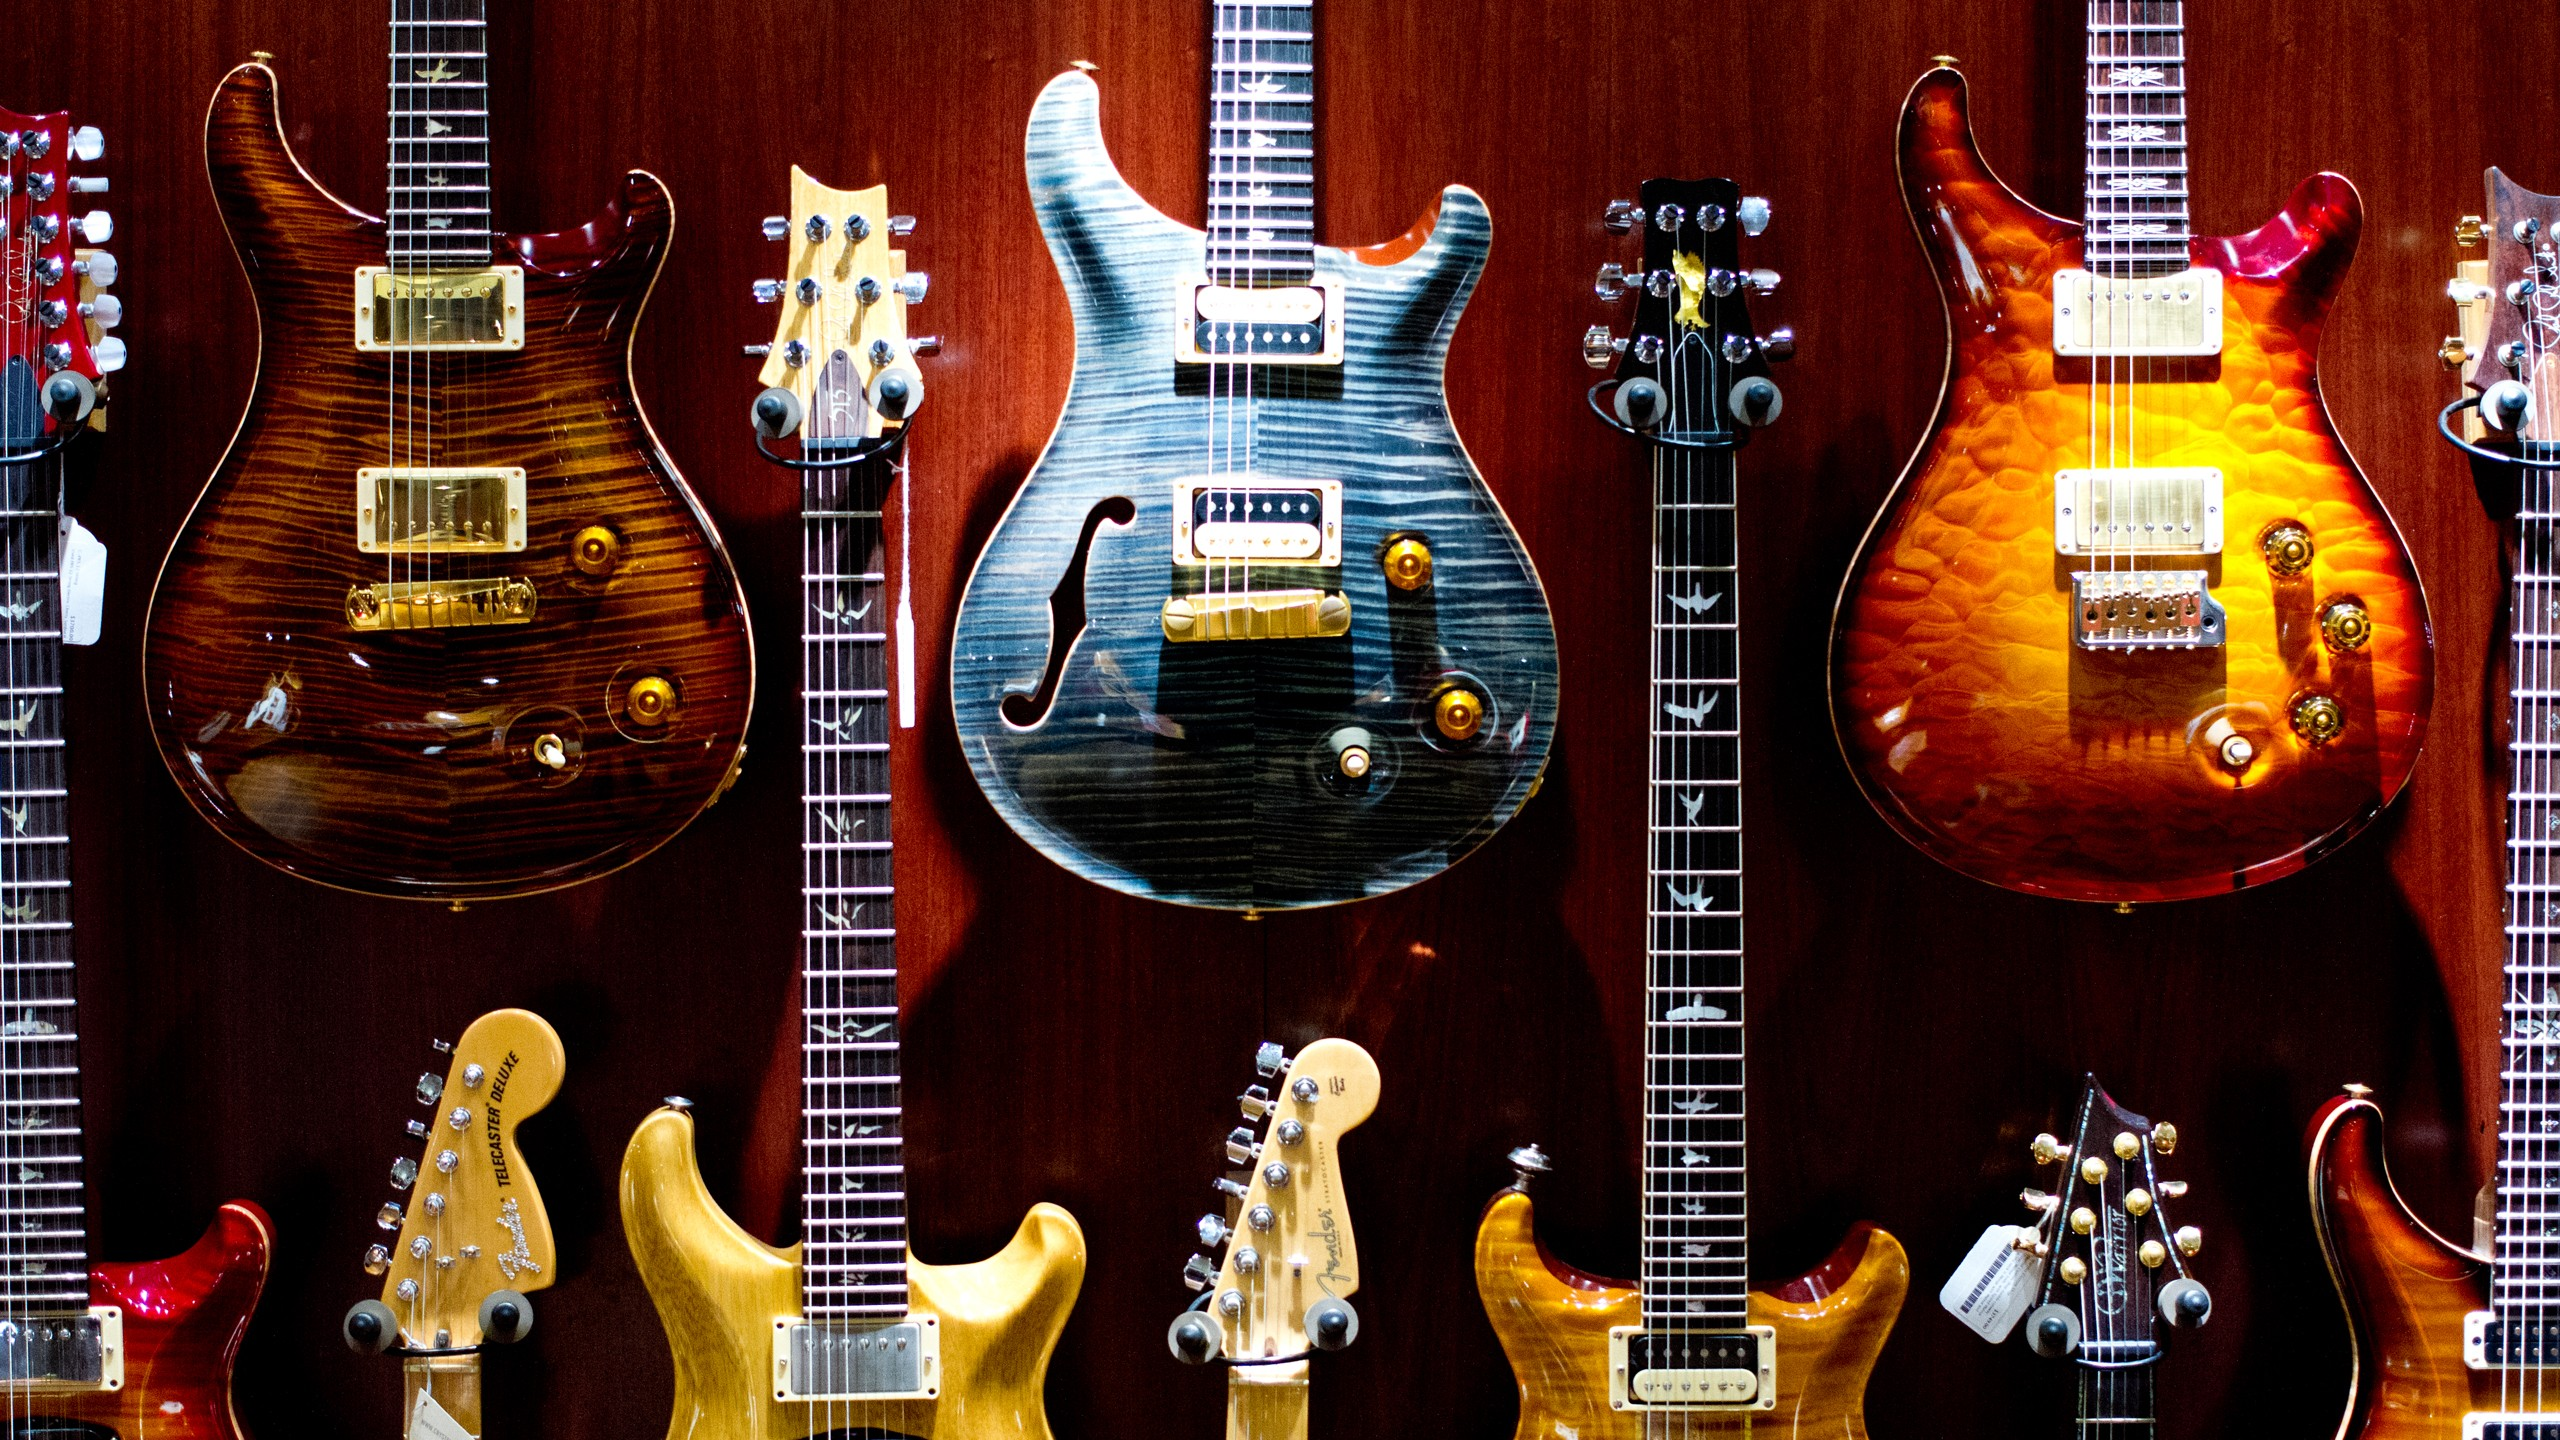 Guitarras de Rock - 2560x1440